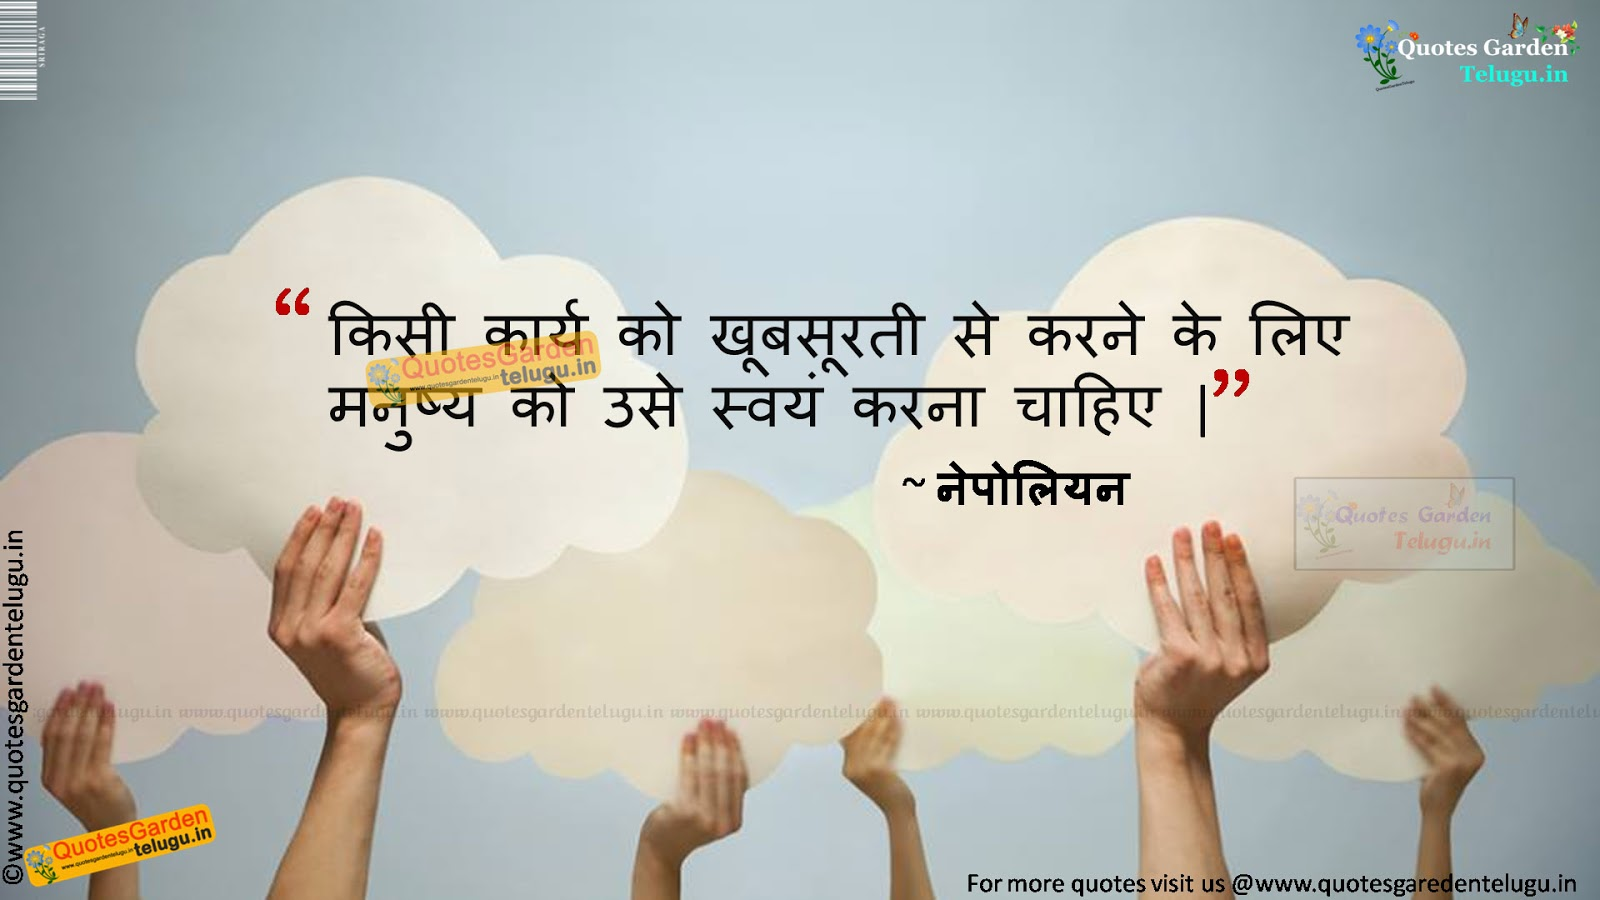 Best Inspirational Hindi Quotes Suvichar Anmolvachan 1150 Quotes